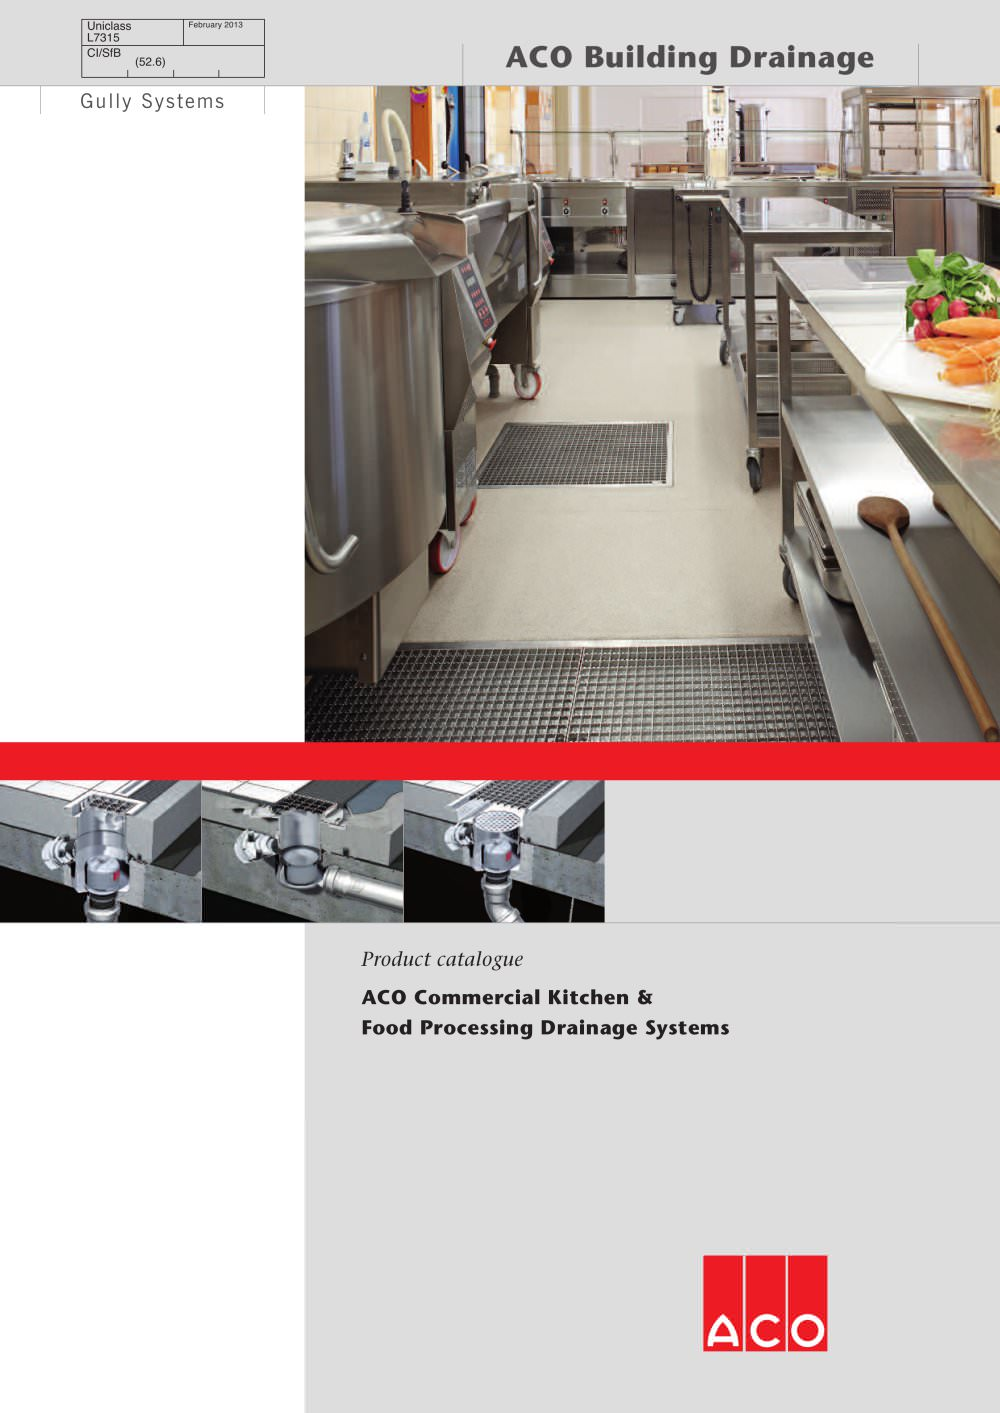 commercial kitchen food processing drainage systems aco building